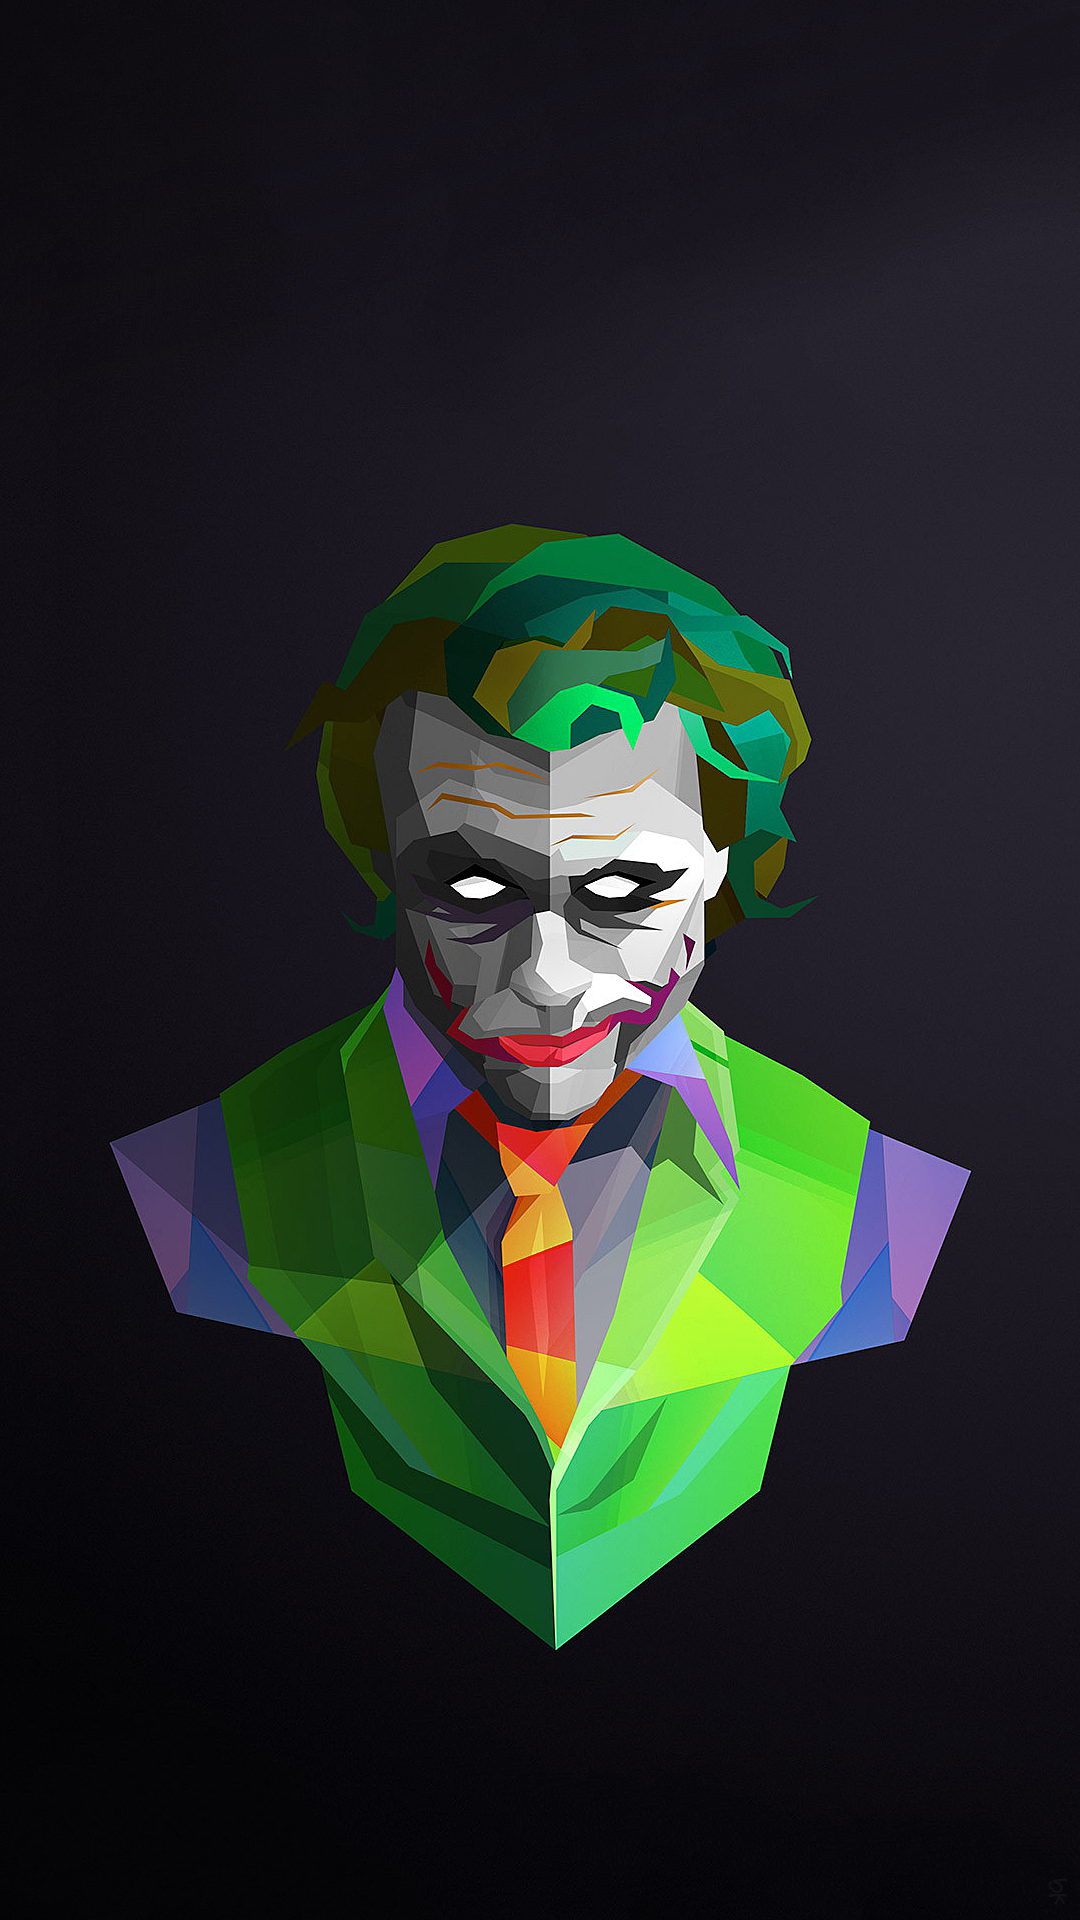 joker wallpaper Google Search Art Pinterest Joker